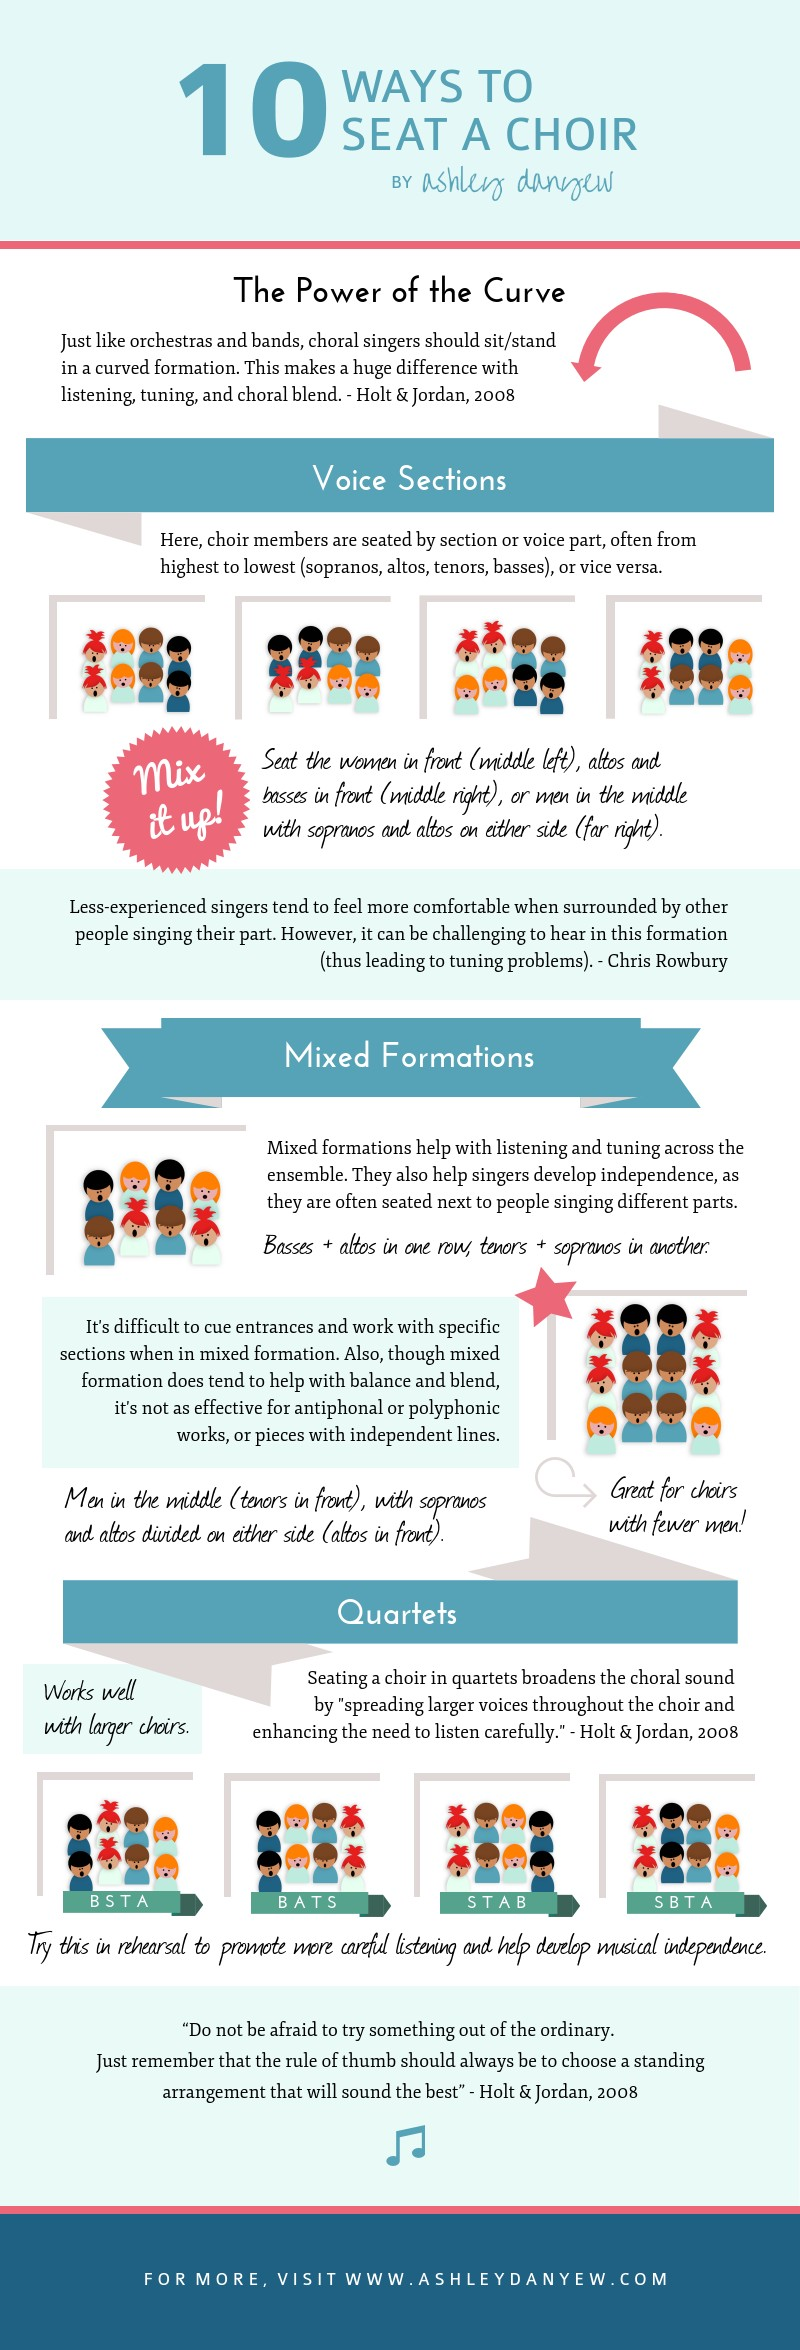 10 ways to seat a choir (a helpful infographic for choral directors) | @ashleydanyew